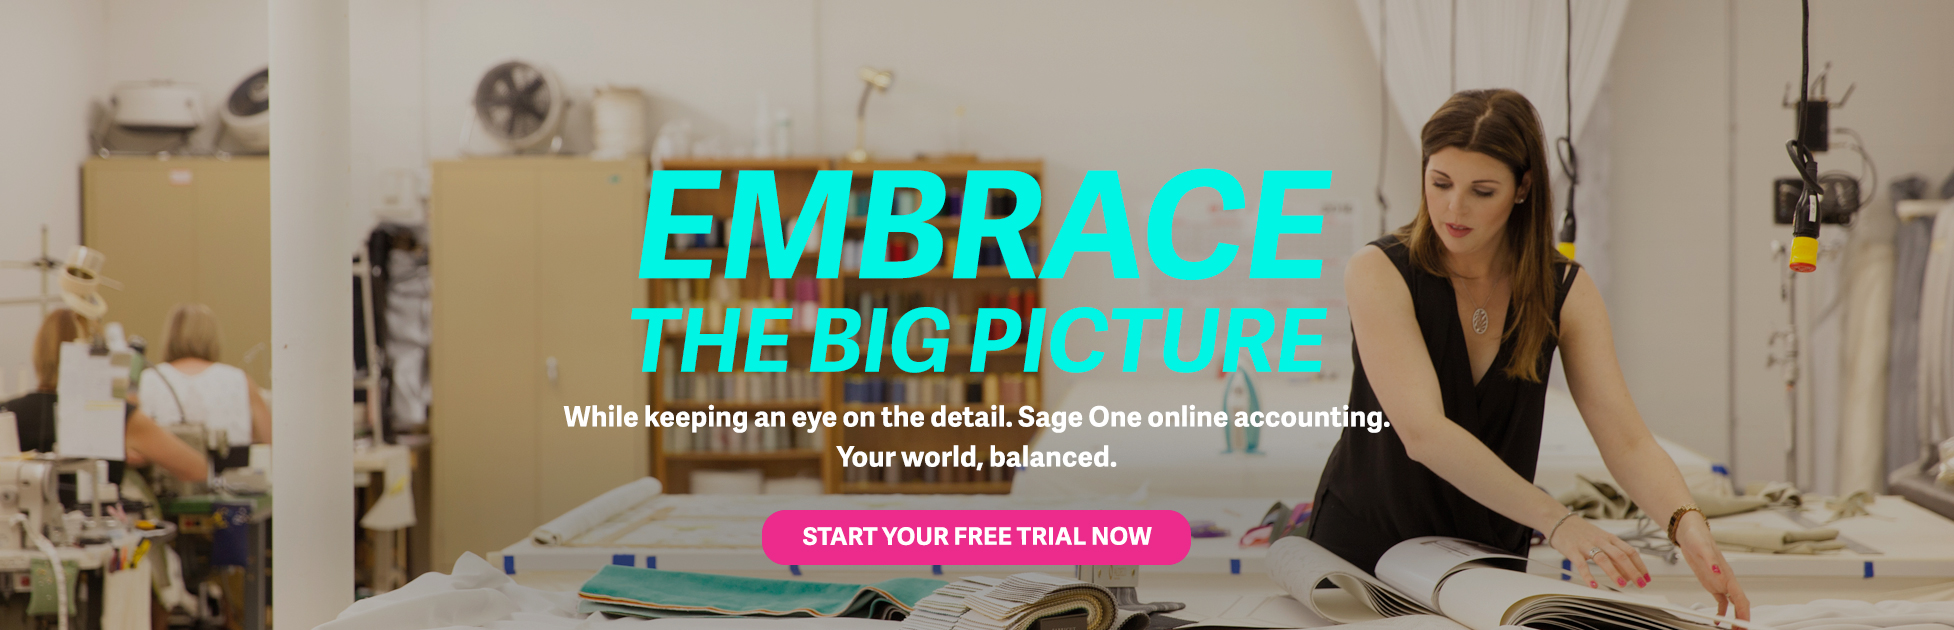 Embrace the big picture with online accounting software